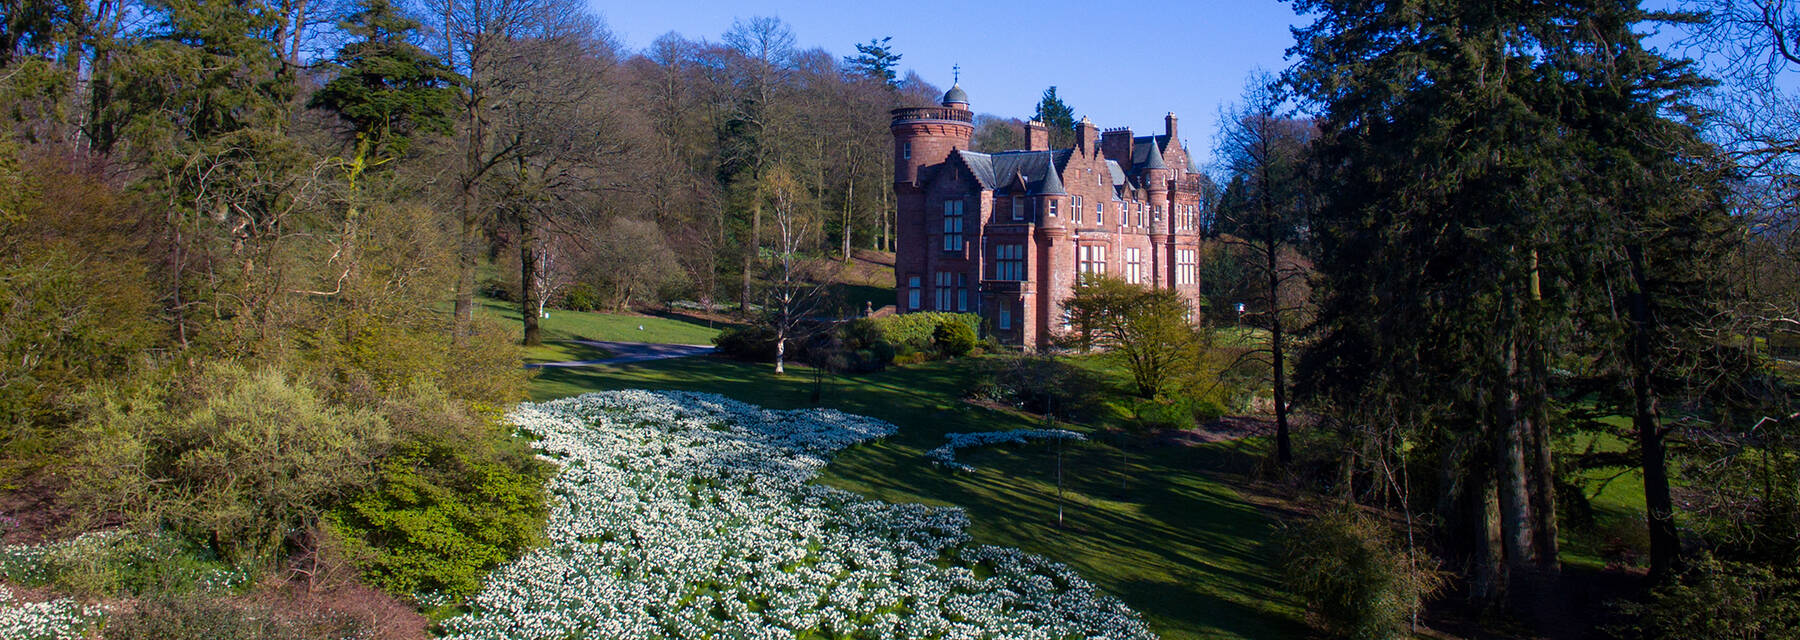 Threave House and garden in spring